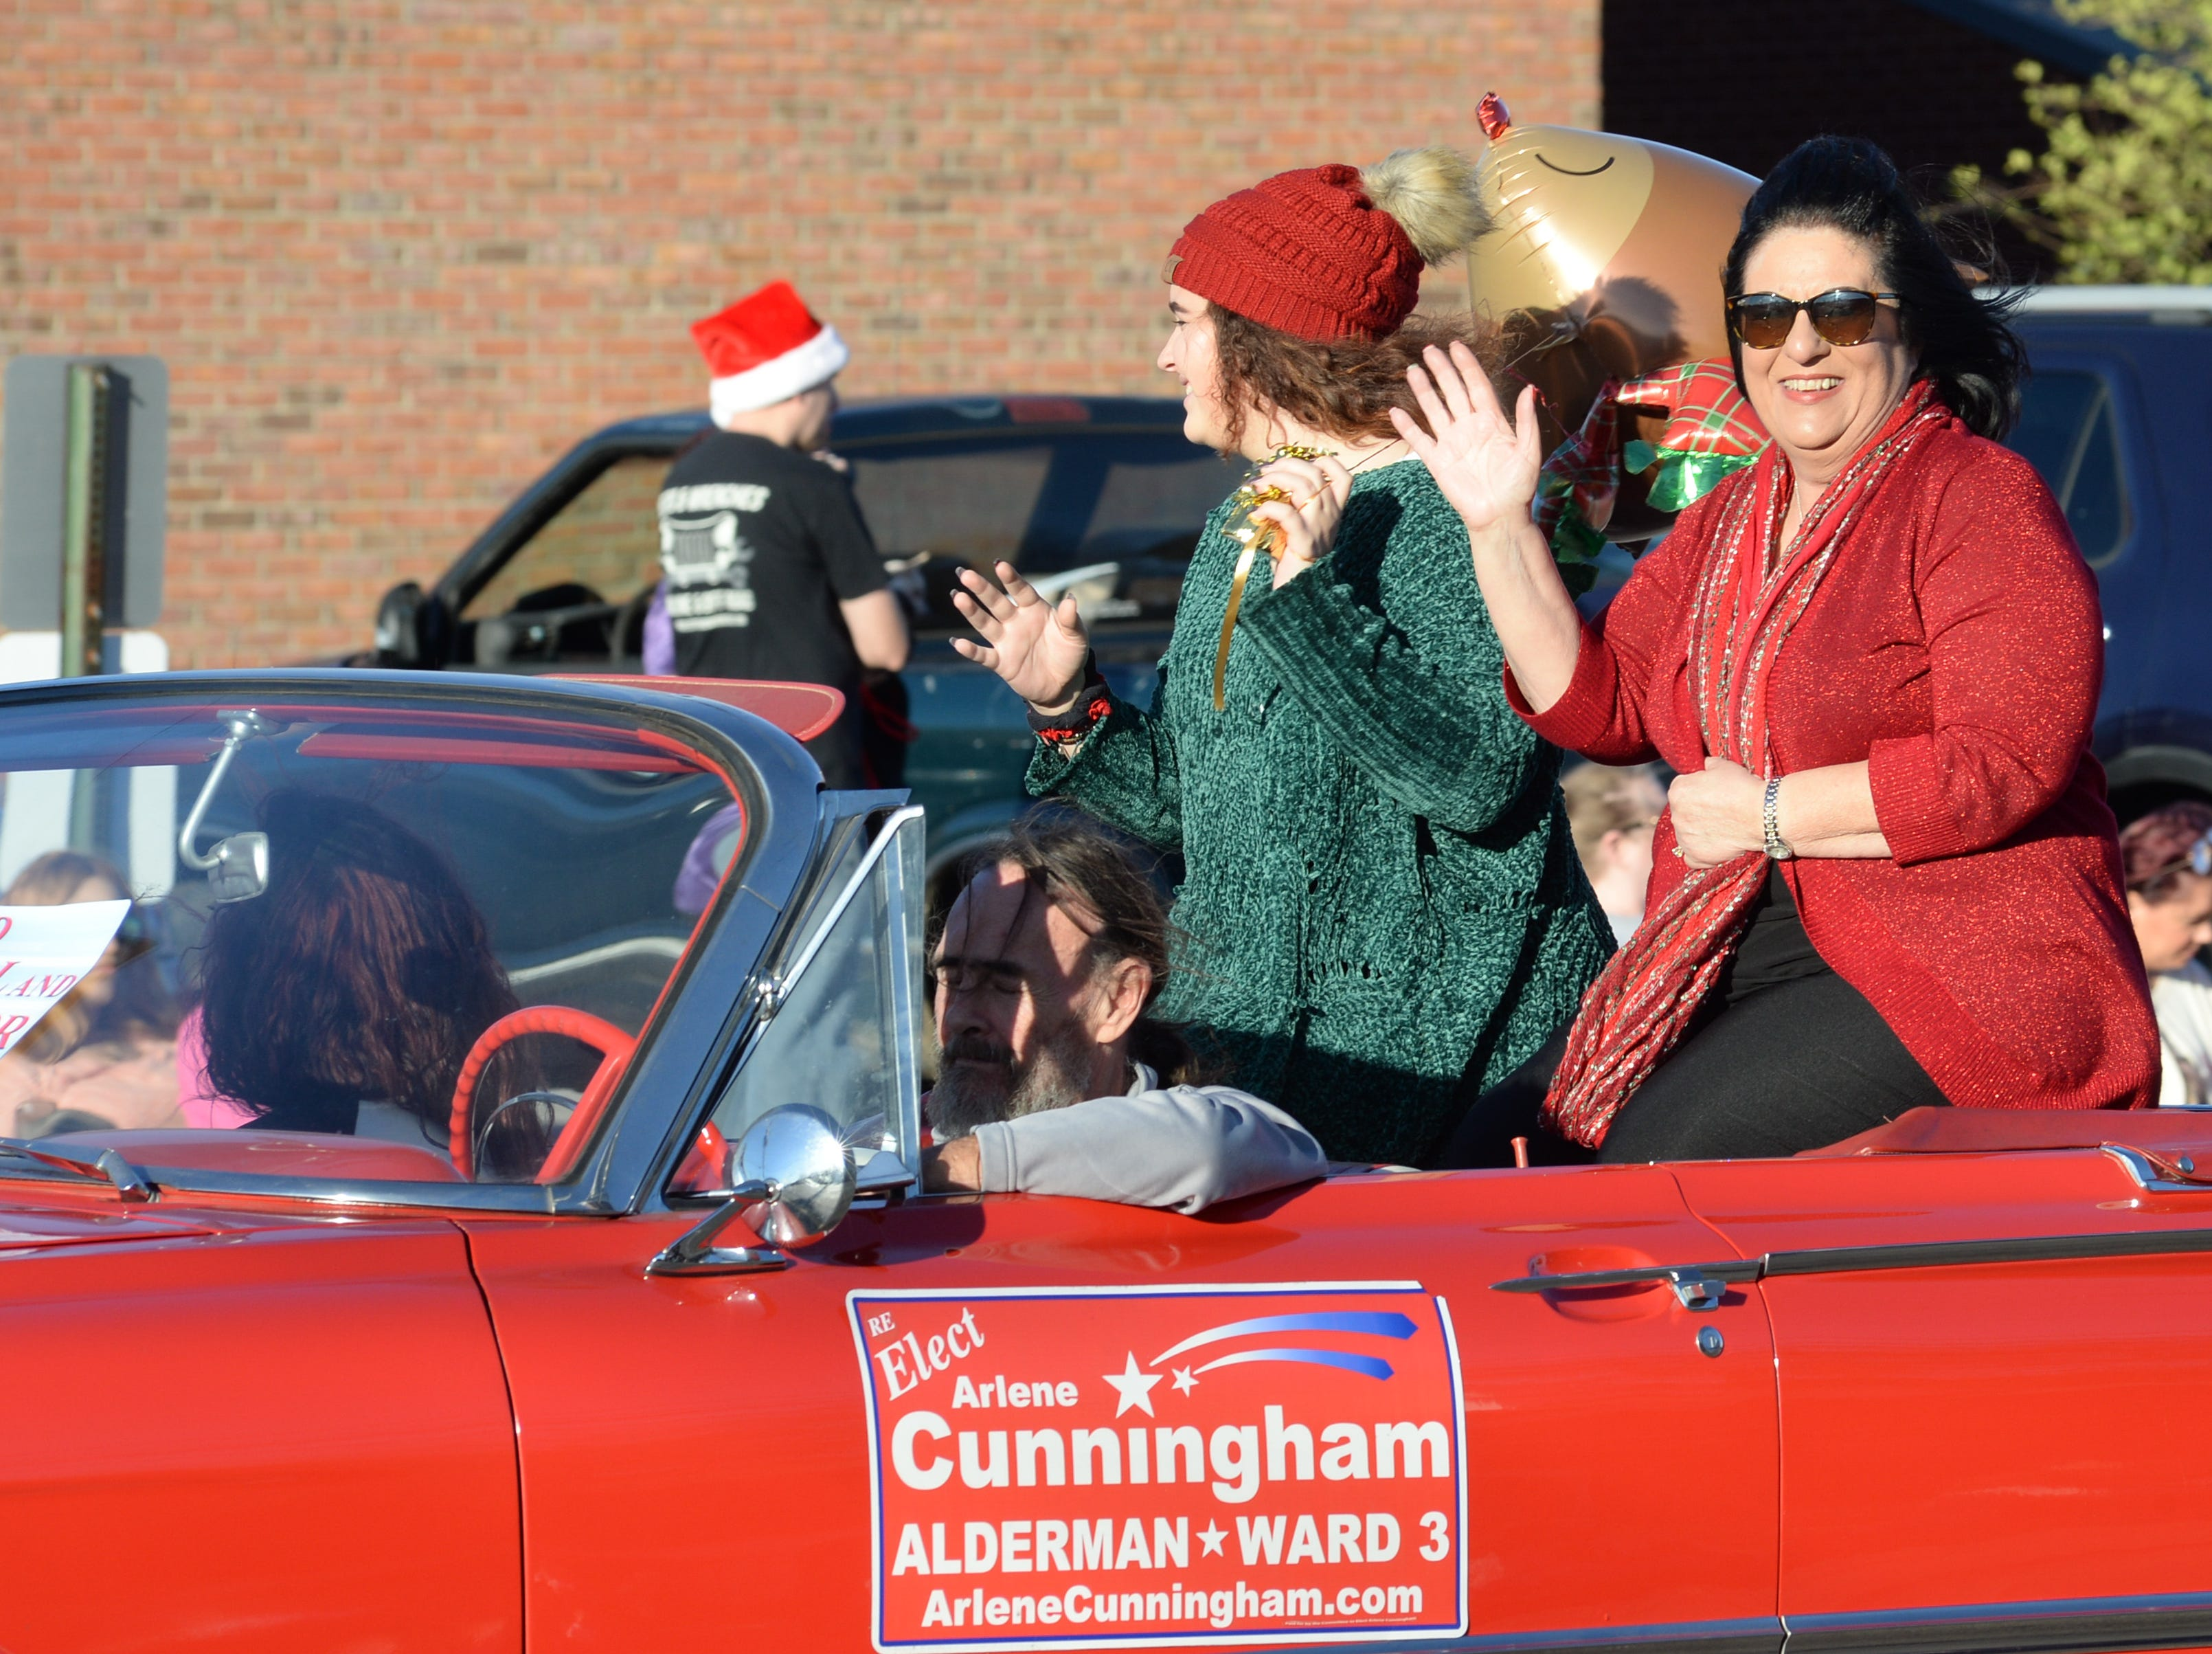 Arlene Cunningham participates in the Hendersonville Christmas Parade on Sunday, Dec. 2.